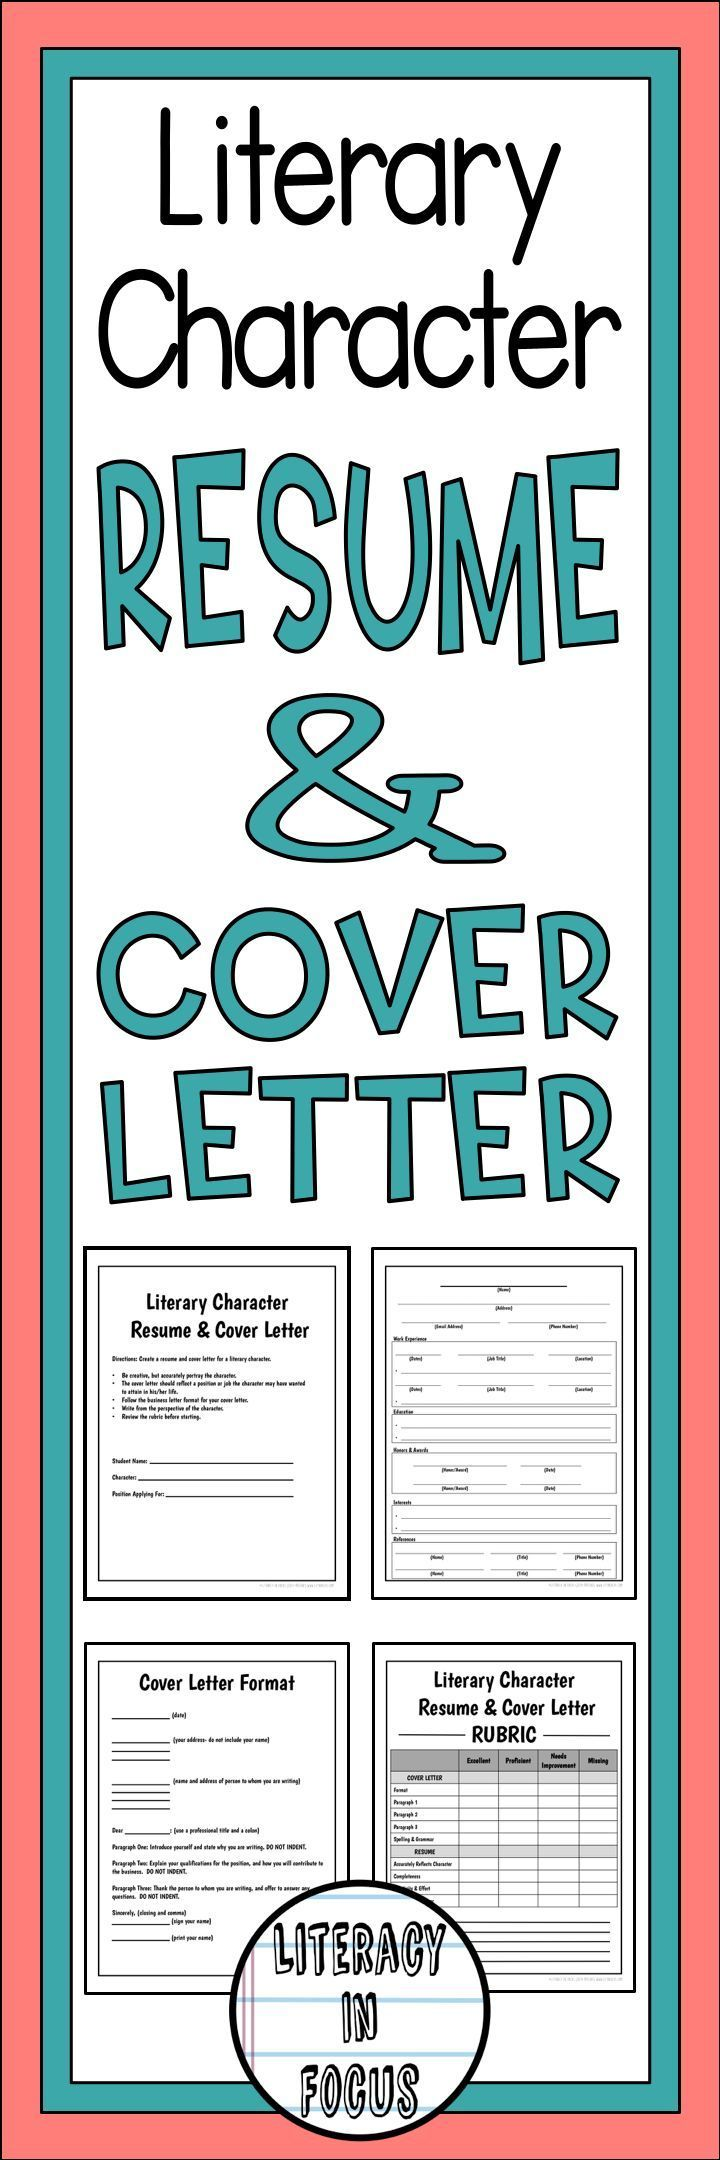 Literary character resume and cover letter.  Create a resume and cover letter for any literary character! #resume #coverletter